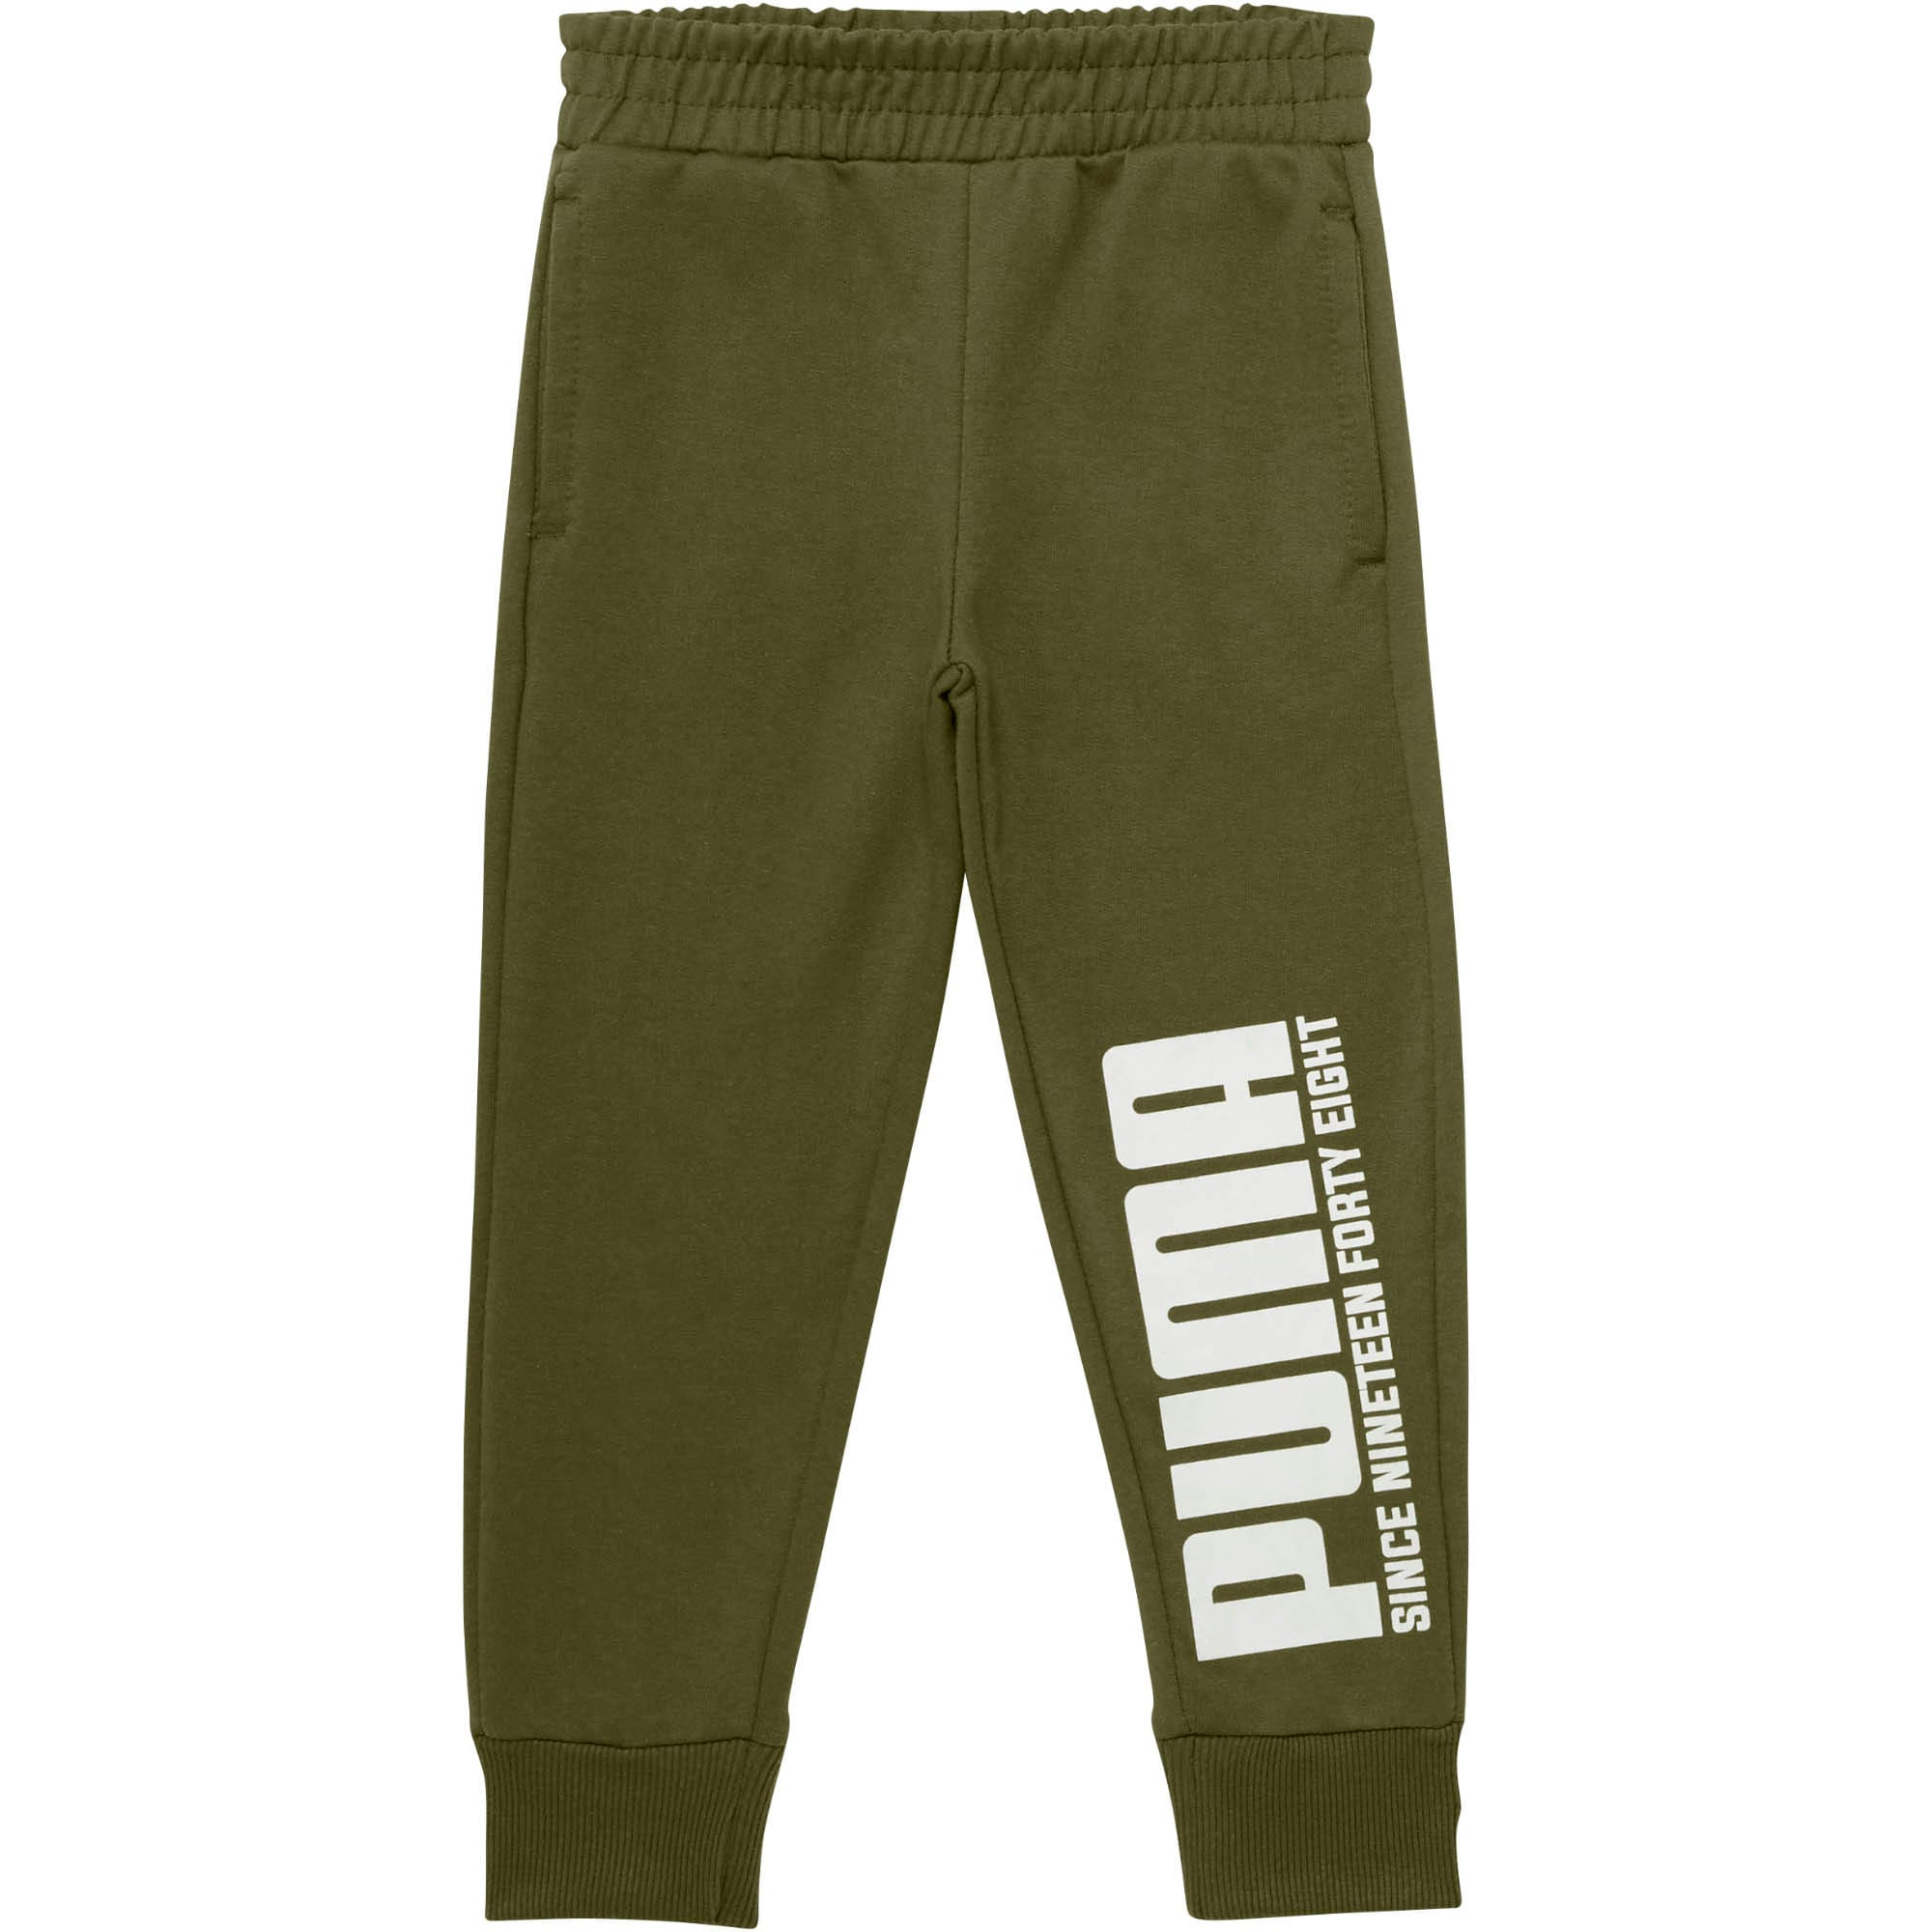 Little Kids' Terry Joggers, OLIVINE, large